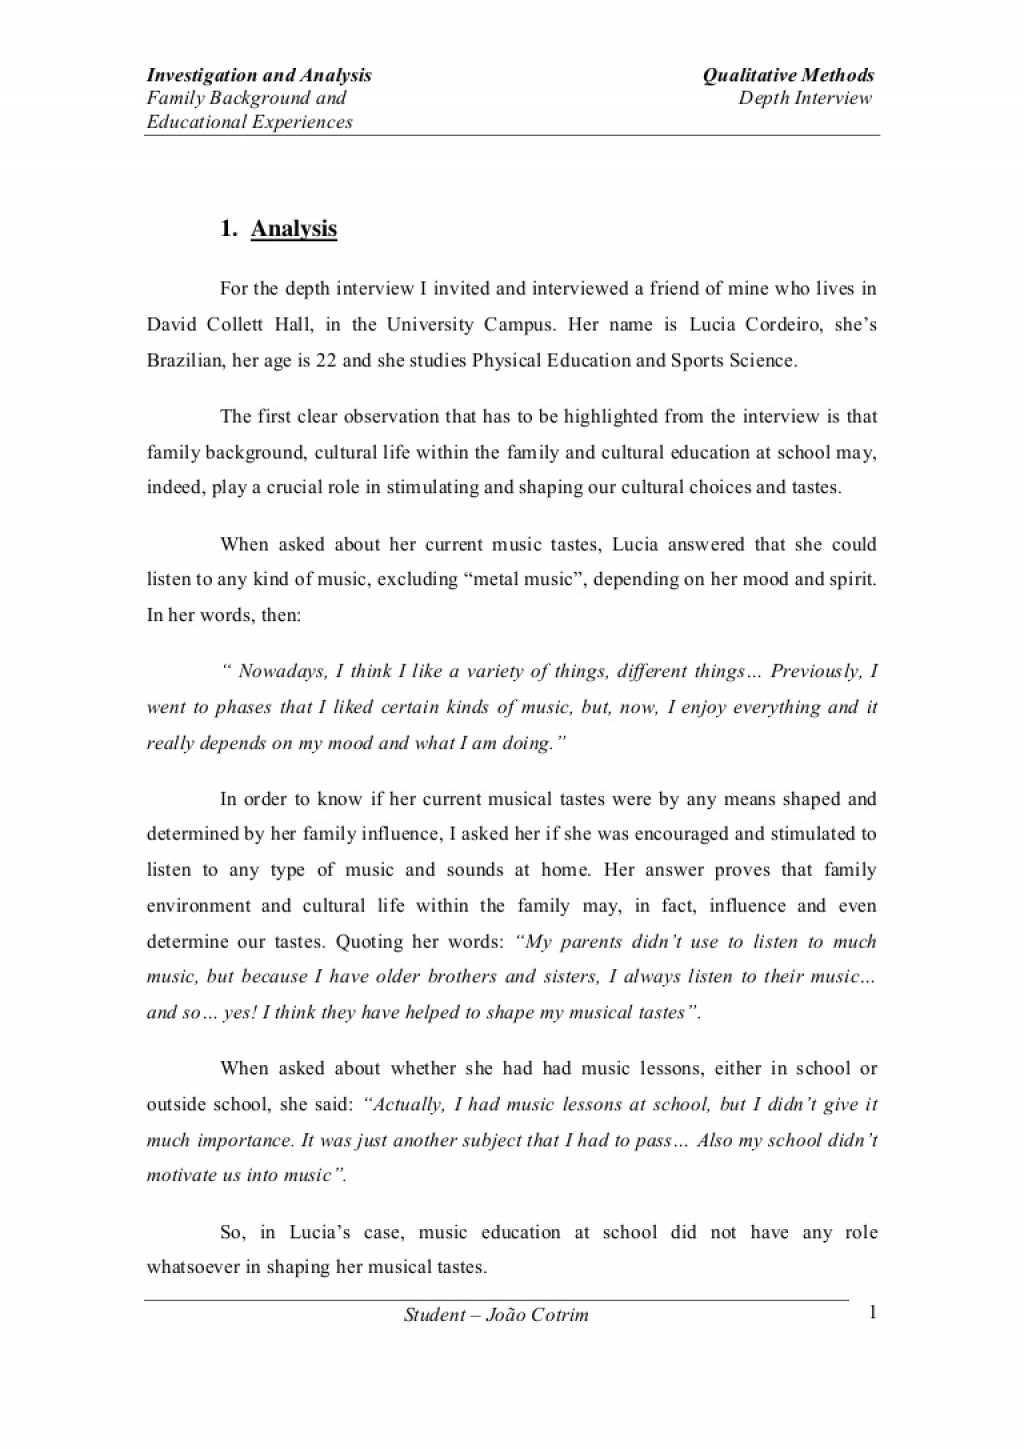 010 Depthinterview Phpapp01 Thumbnail Essay Example Striking Profile How To Start A On Person Homeless Large